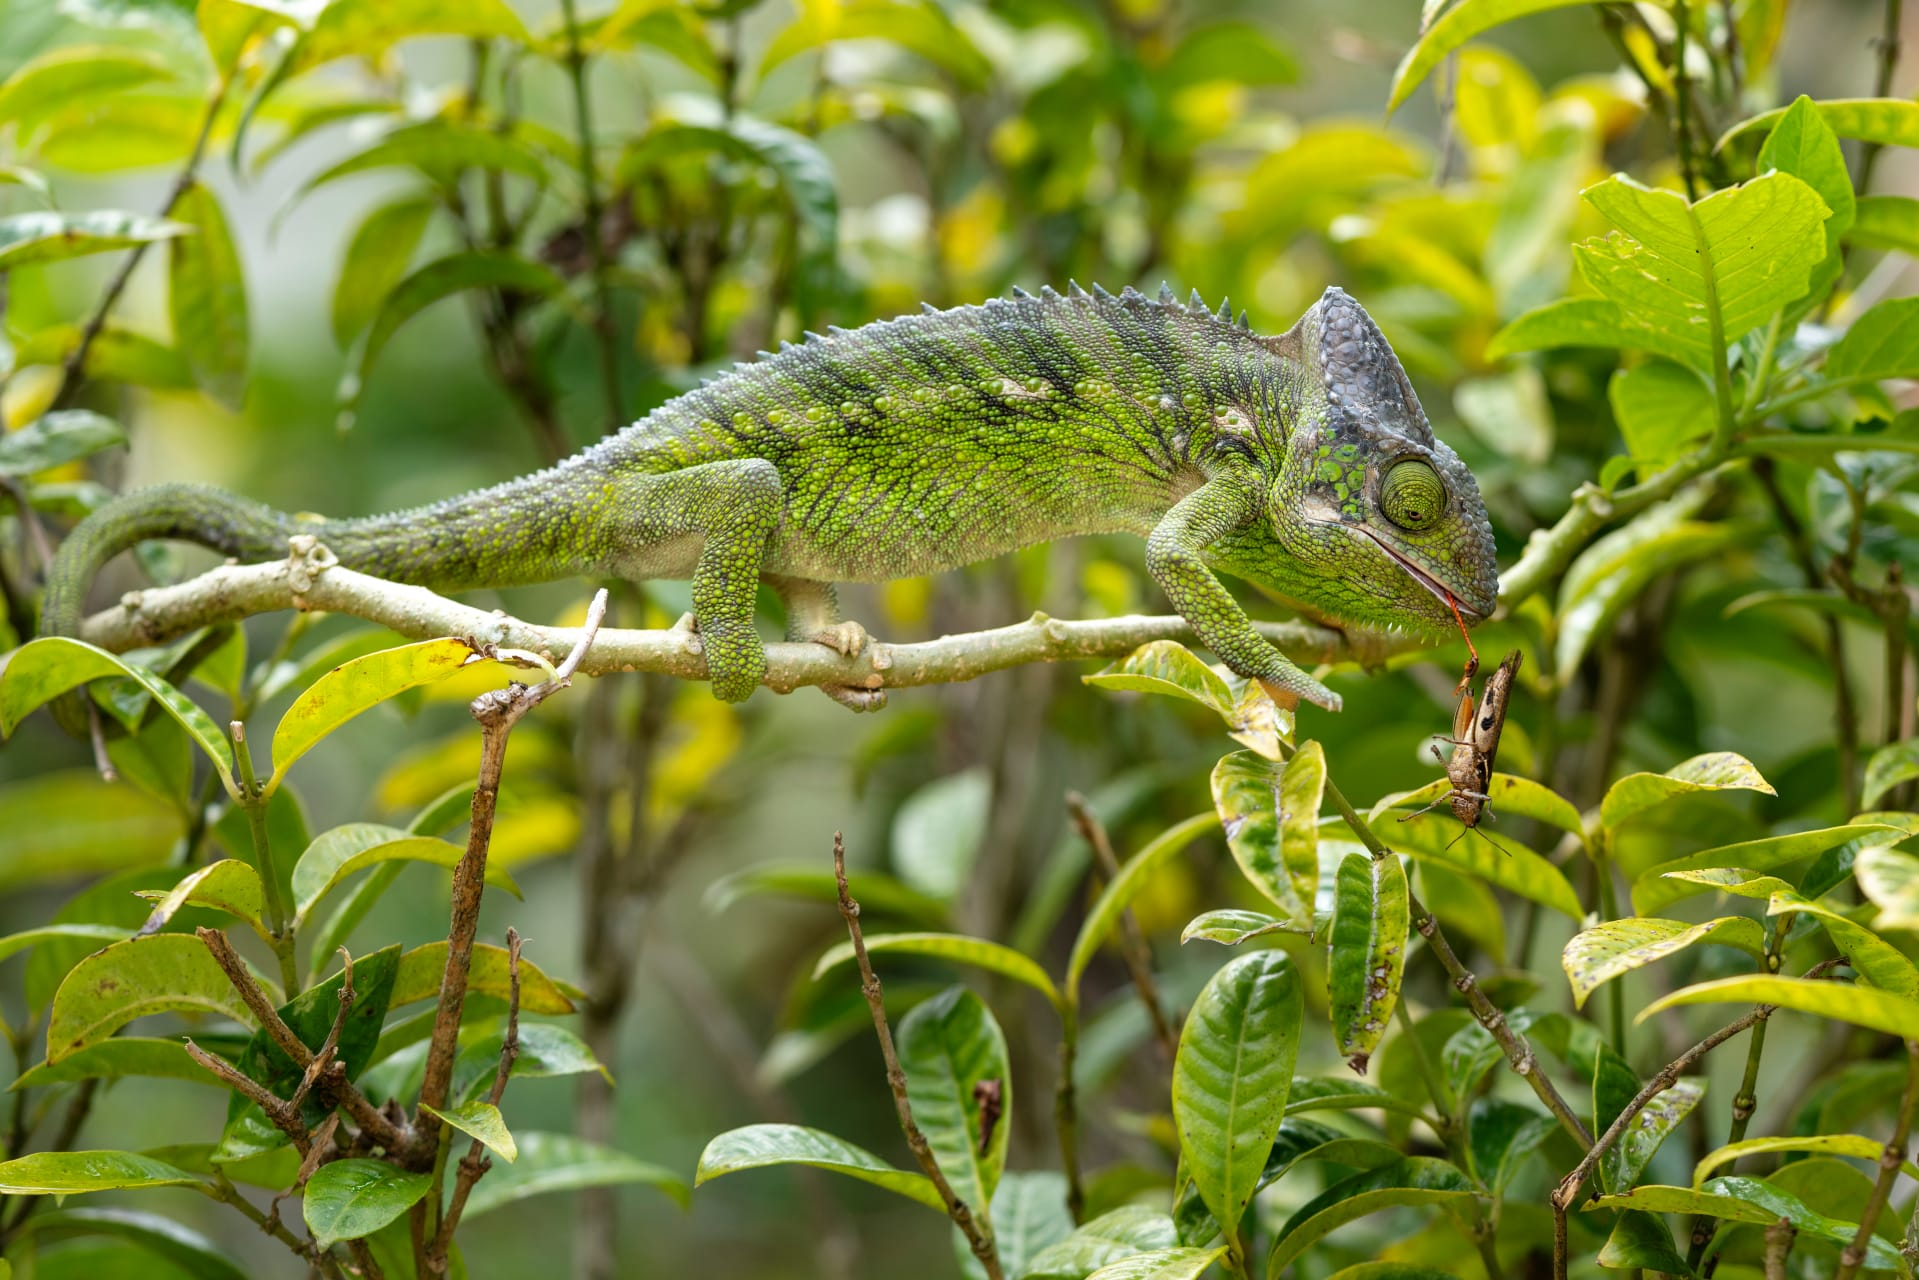 Marozevo - Exclusive Immersion into the World of Chameleons & Geckos